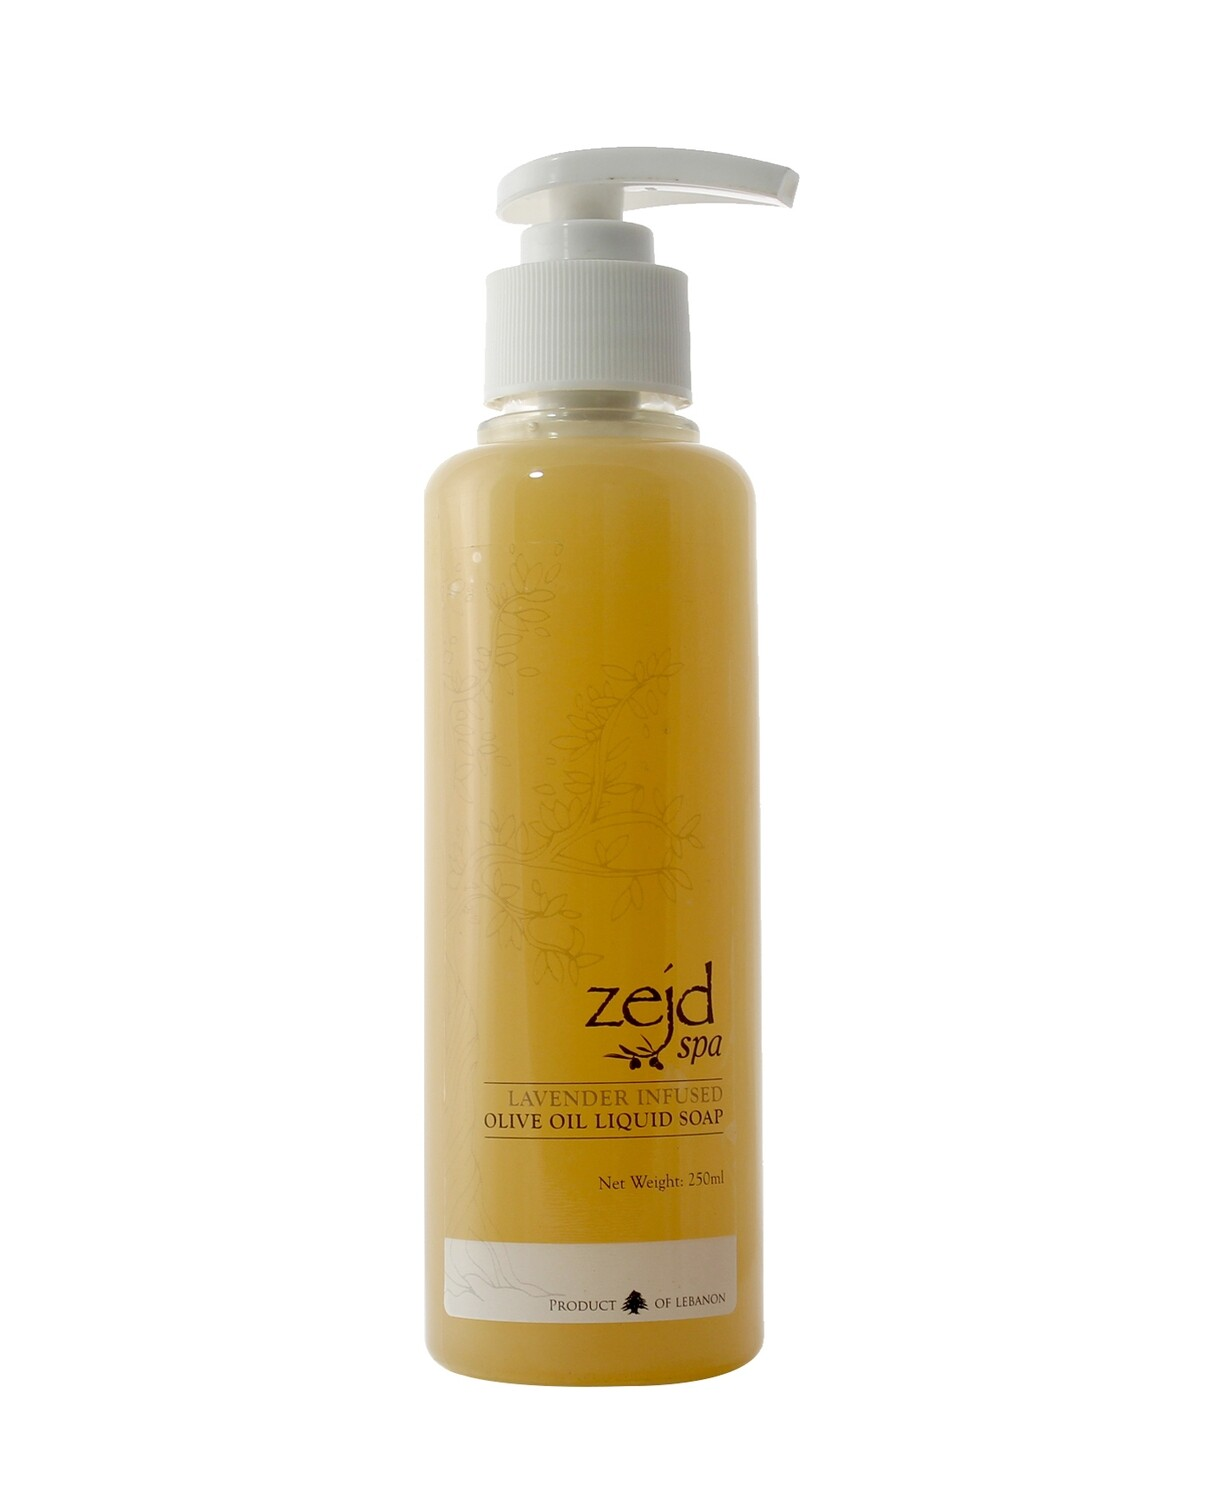 Olive Oil Liquid Soap Lavender (Bottle) - Zejd